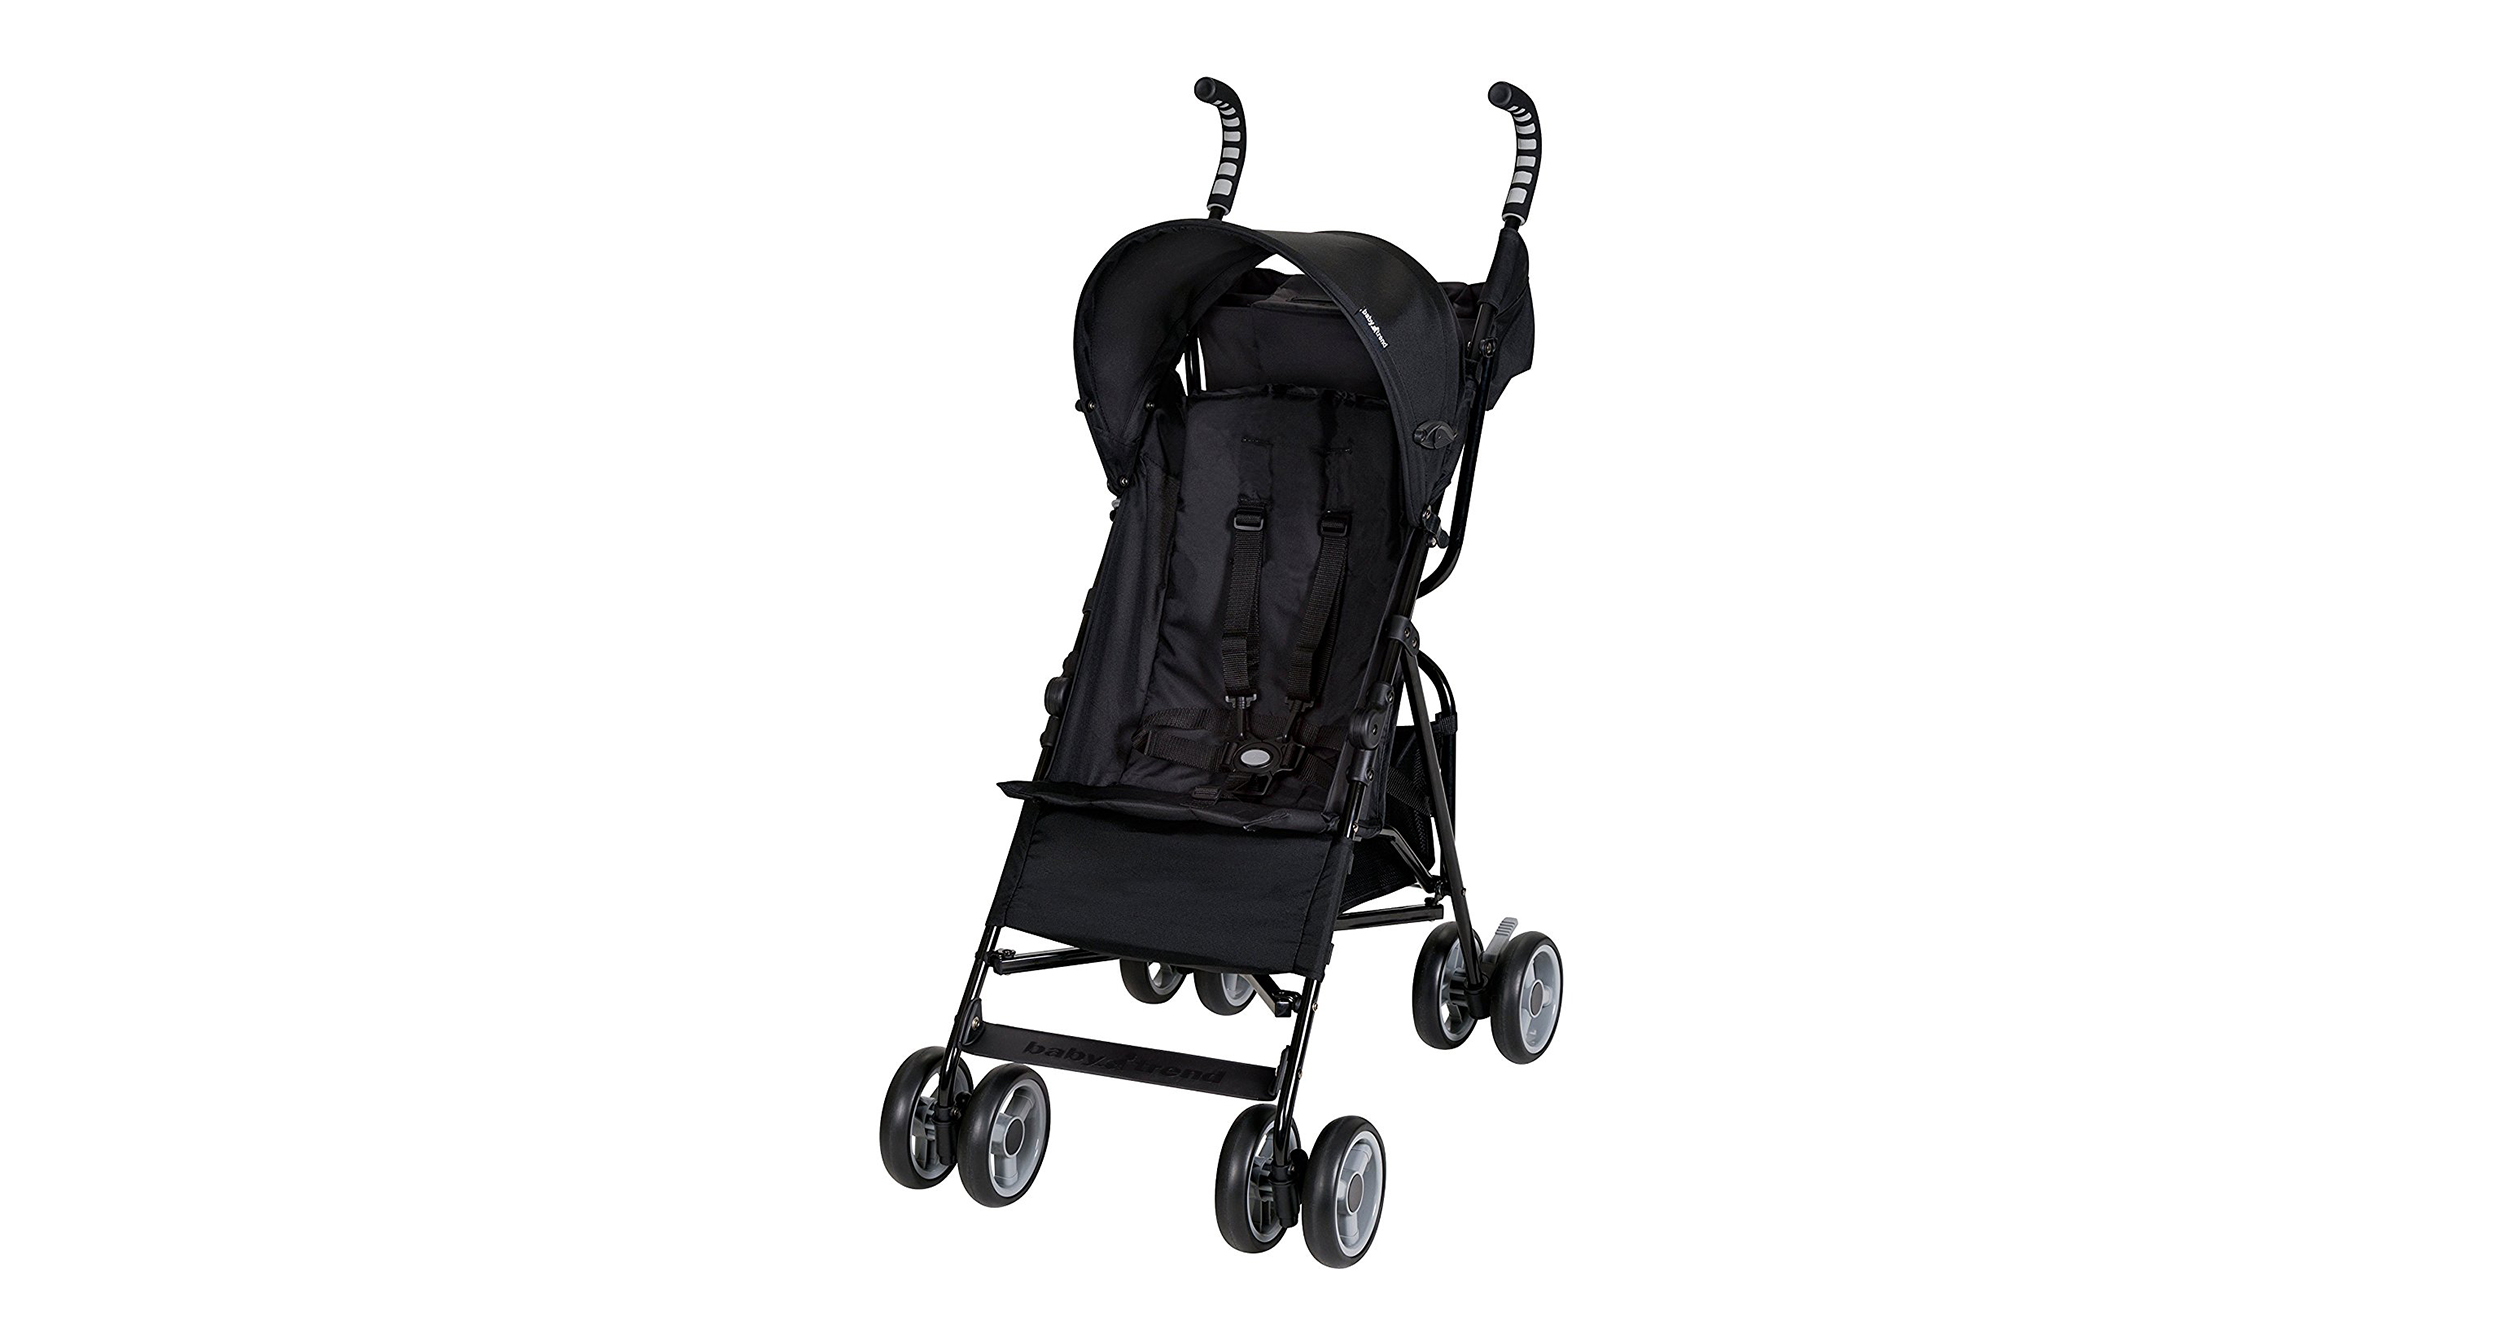 Chicco C6 Stroller Review